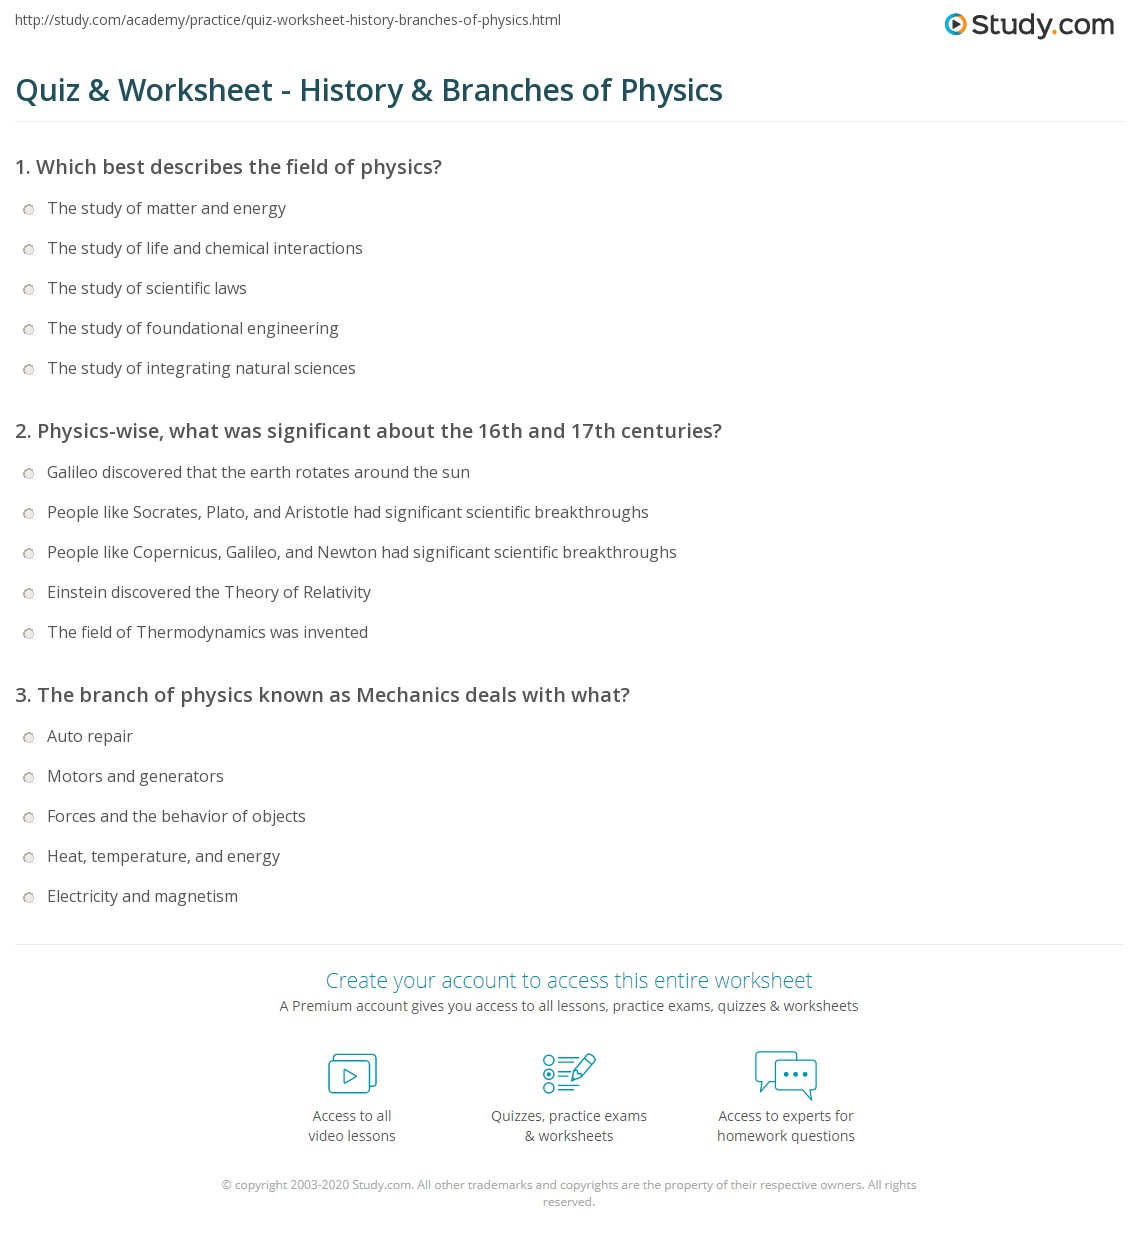 Quiz & Worksheet - History & Branches of Physics | Study.com